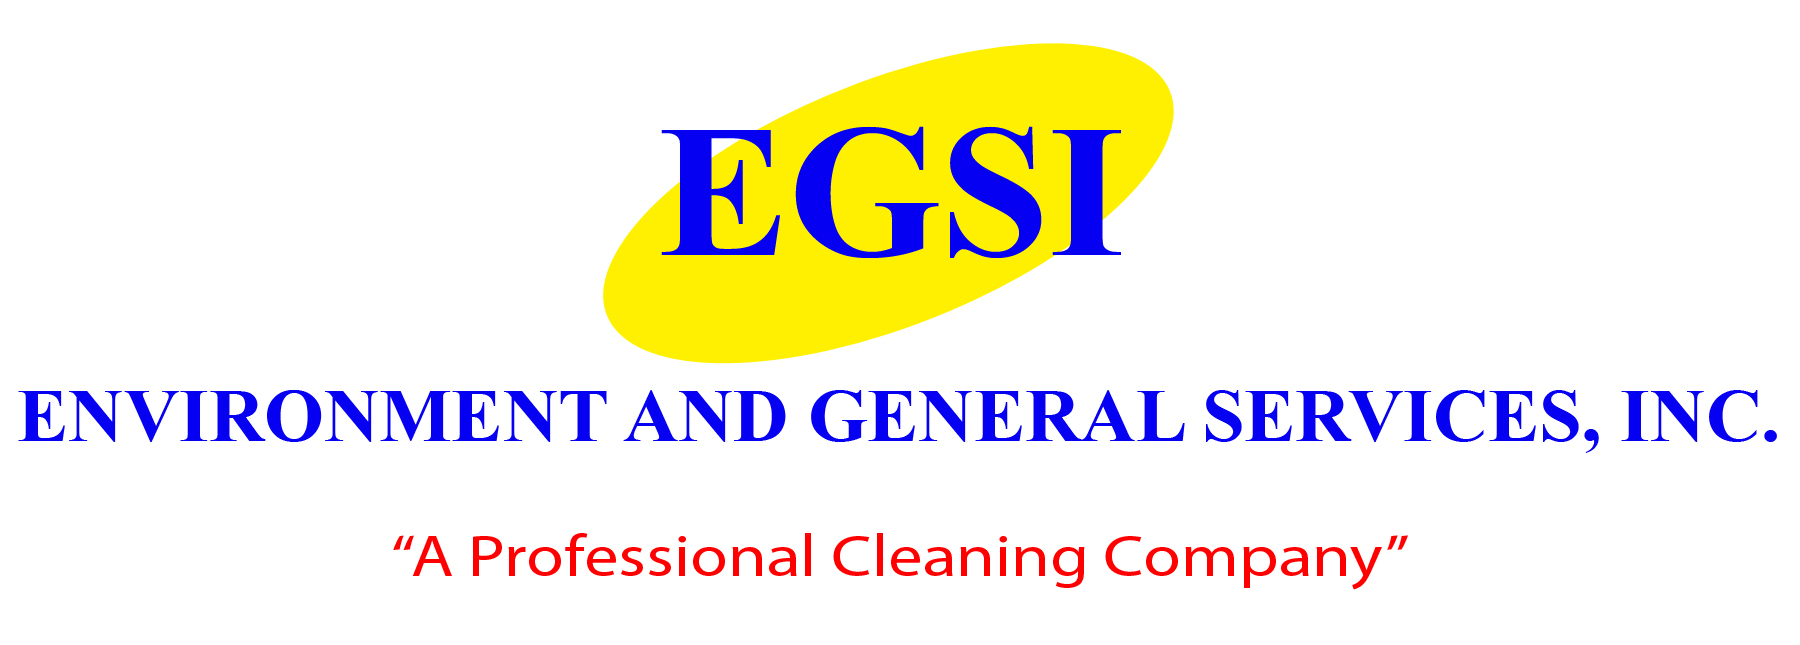 Environment and General Services